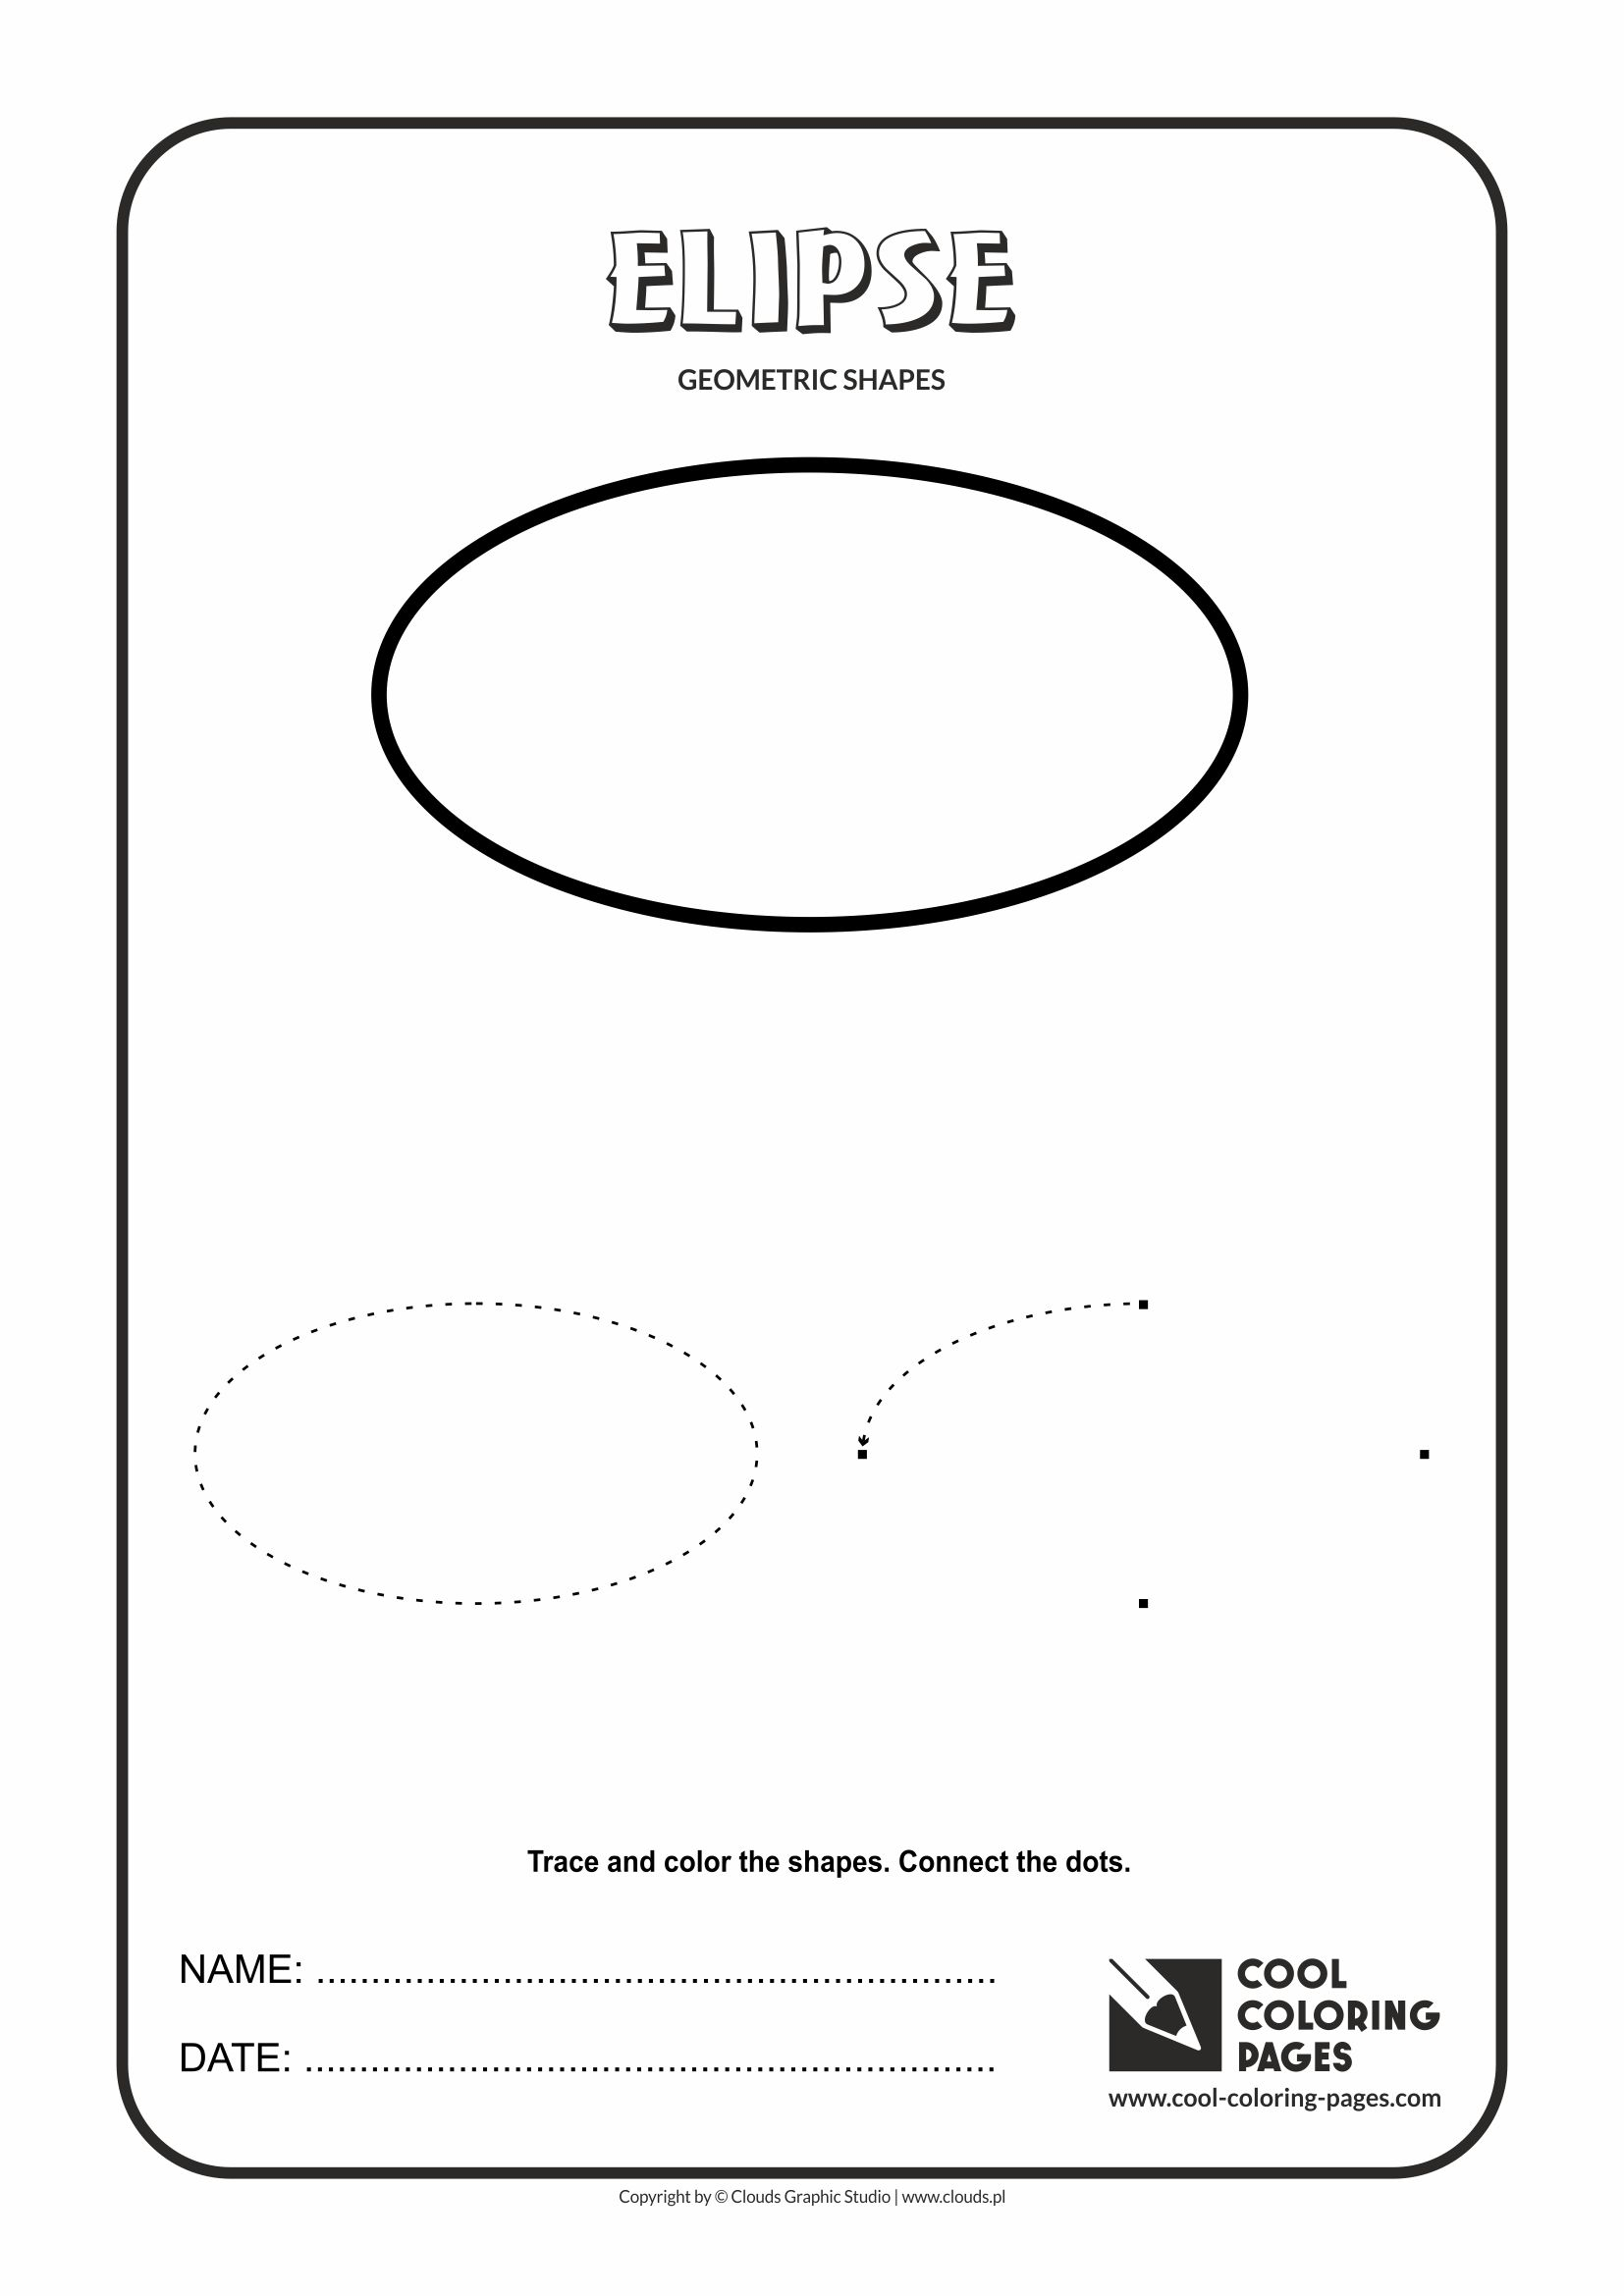 Geometric shapes coloring sheet - Cool Coloring Pages Geometric Shapes Elipse